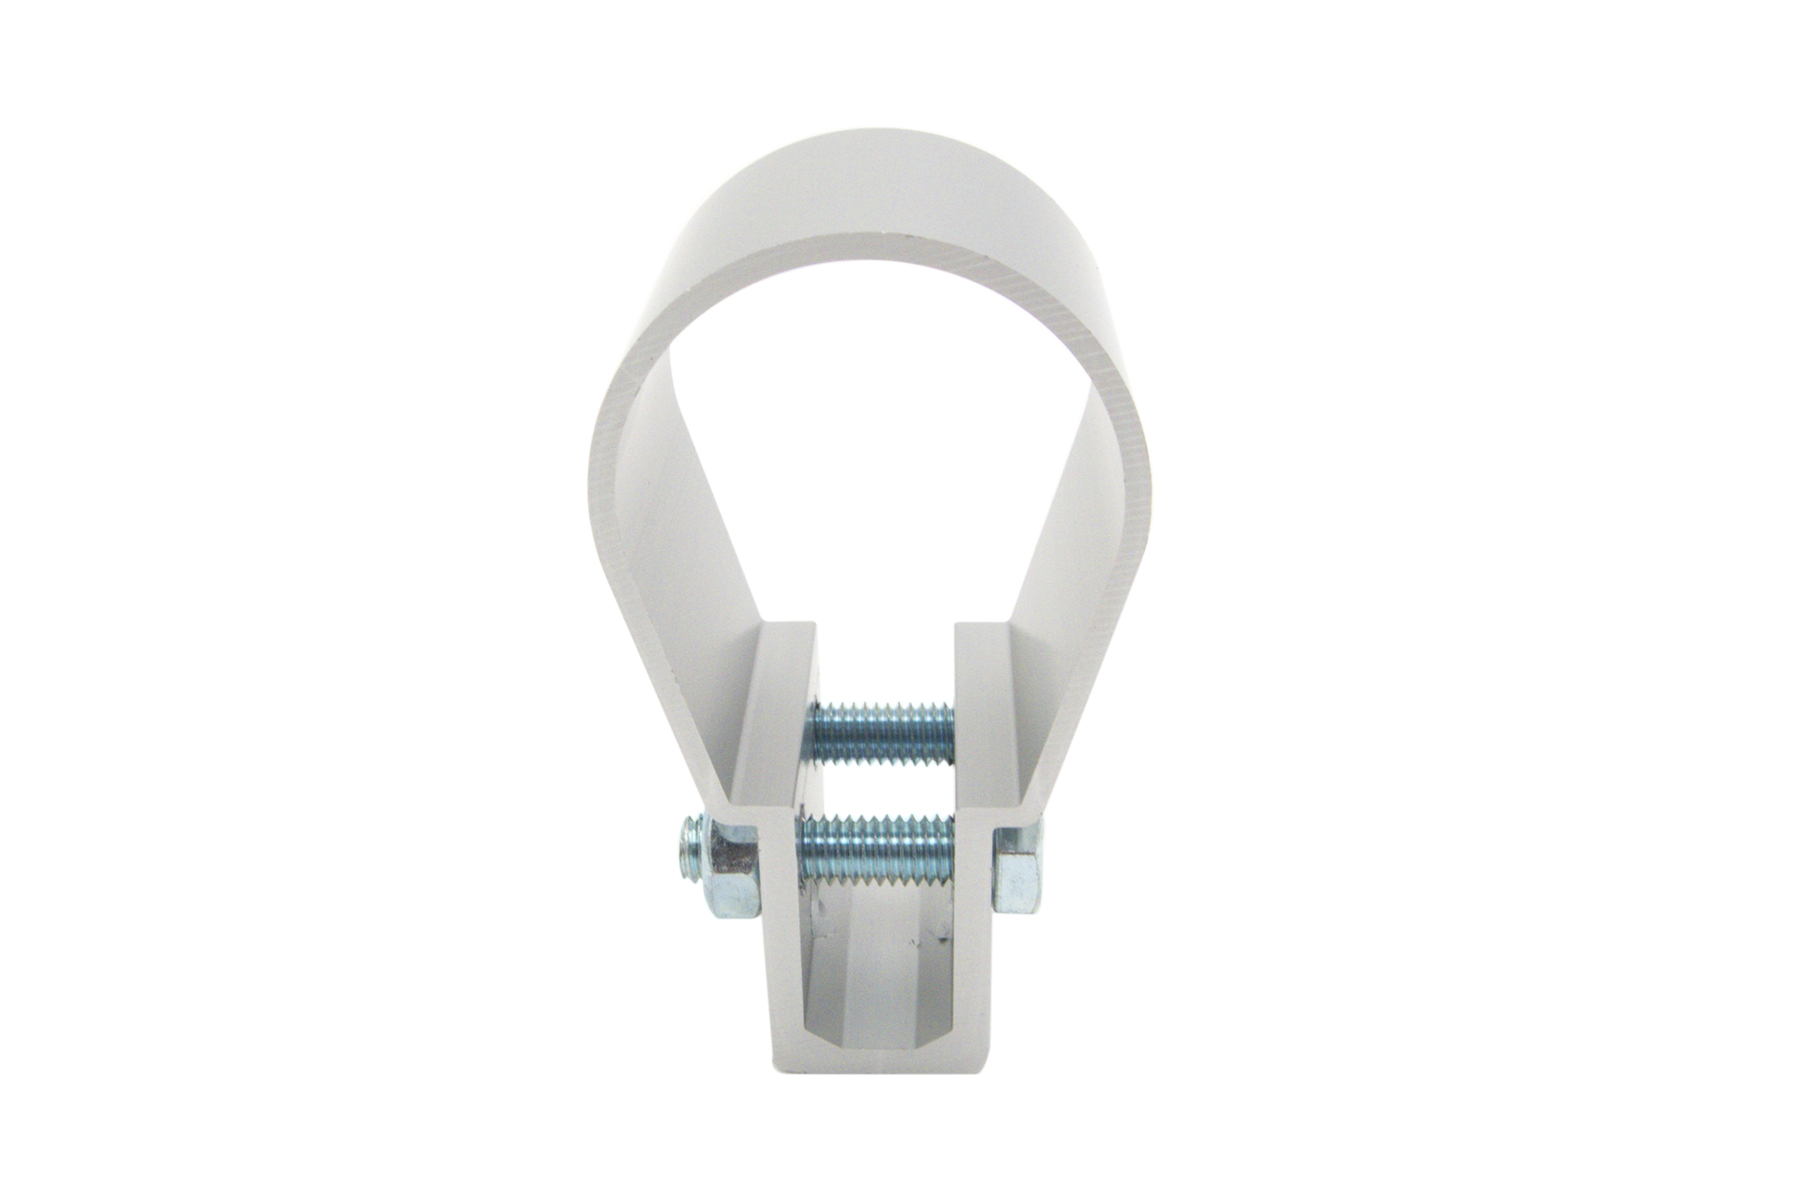 KST-A02-H handle for KST-A02